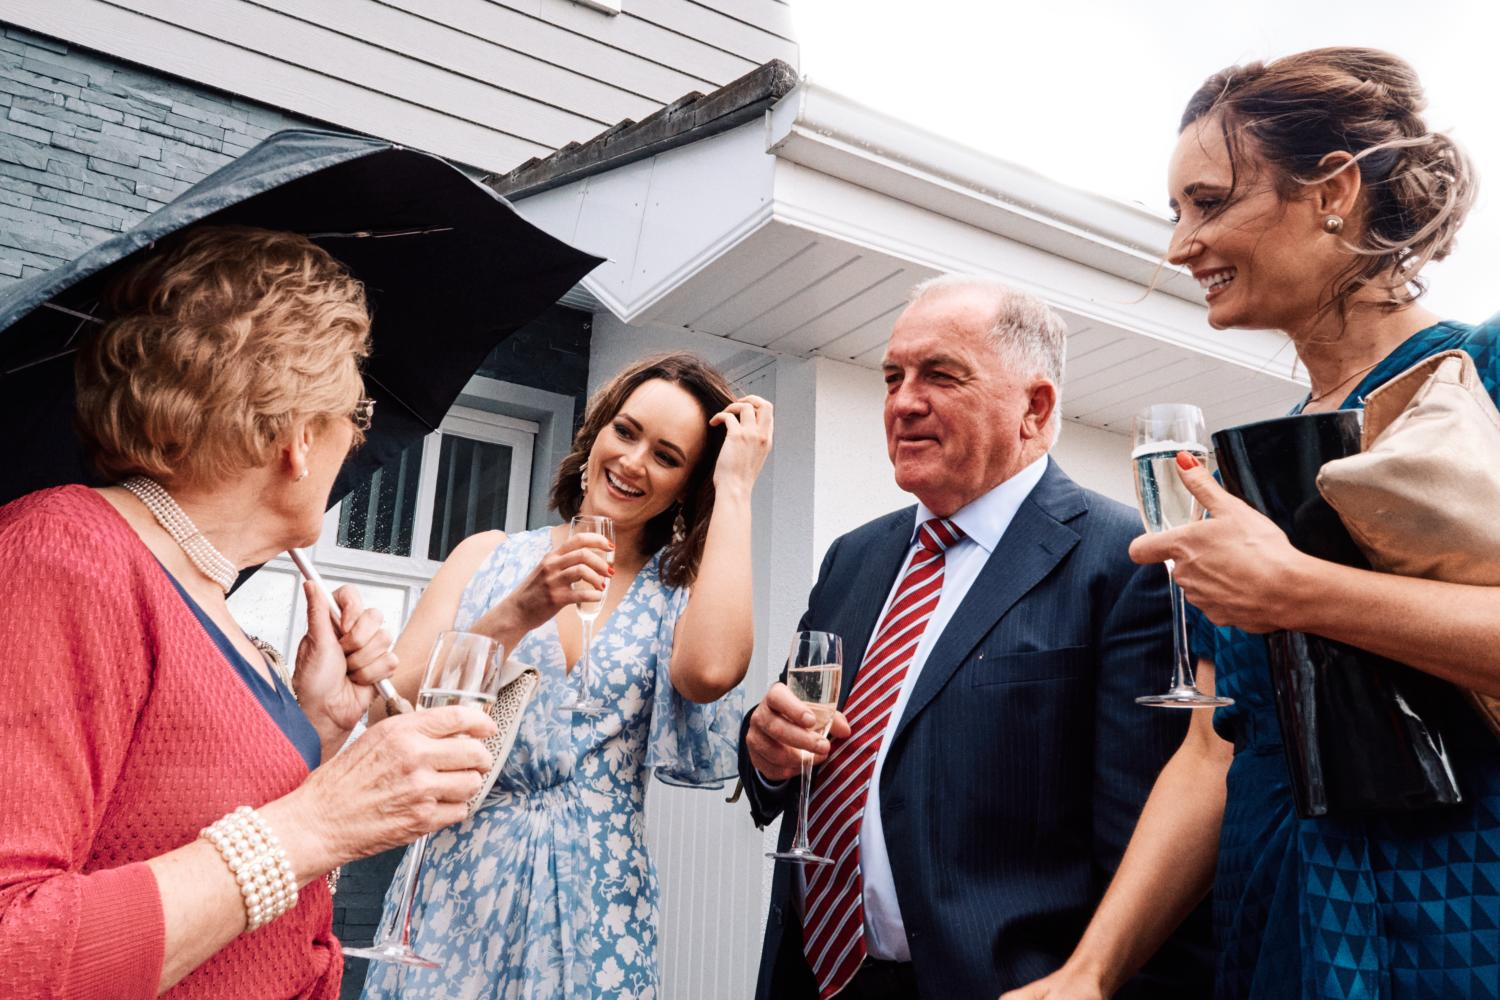 Wedding guests talk and drink champagne